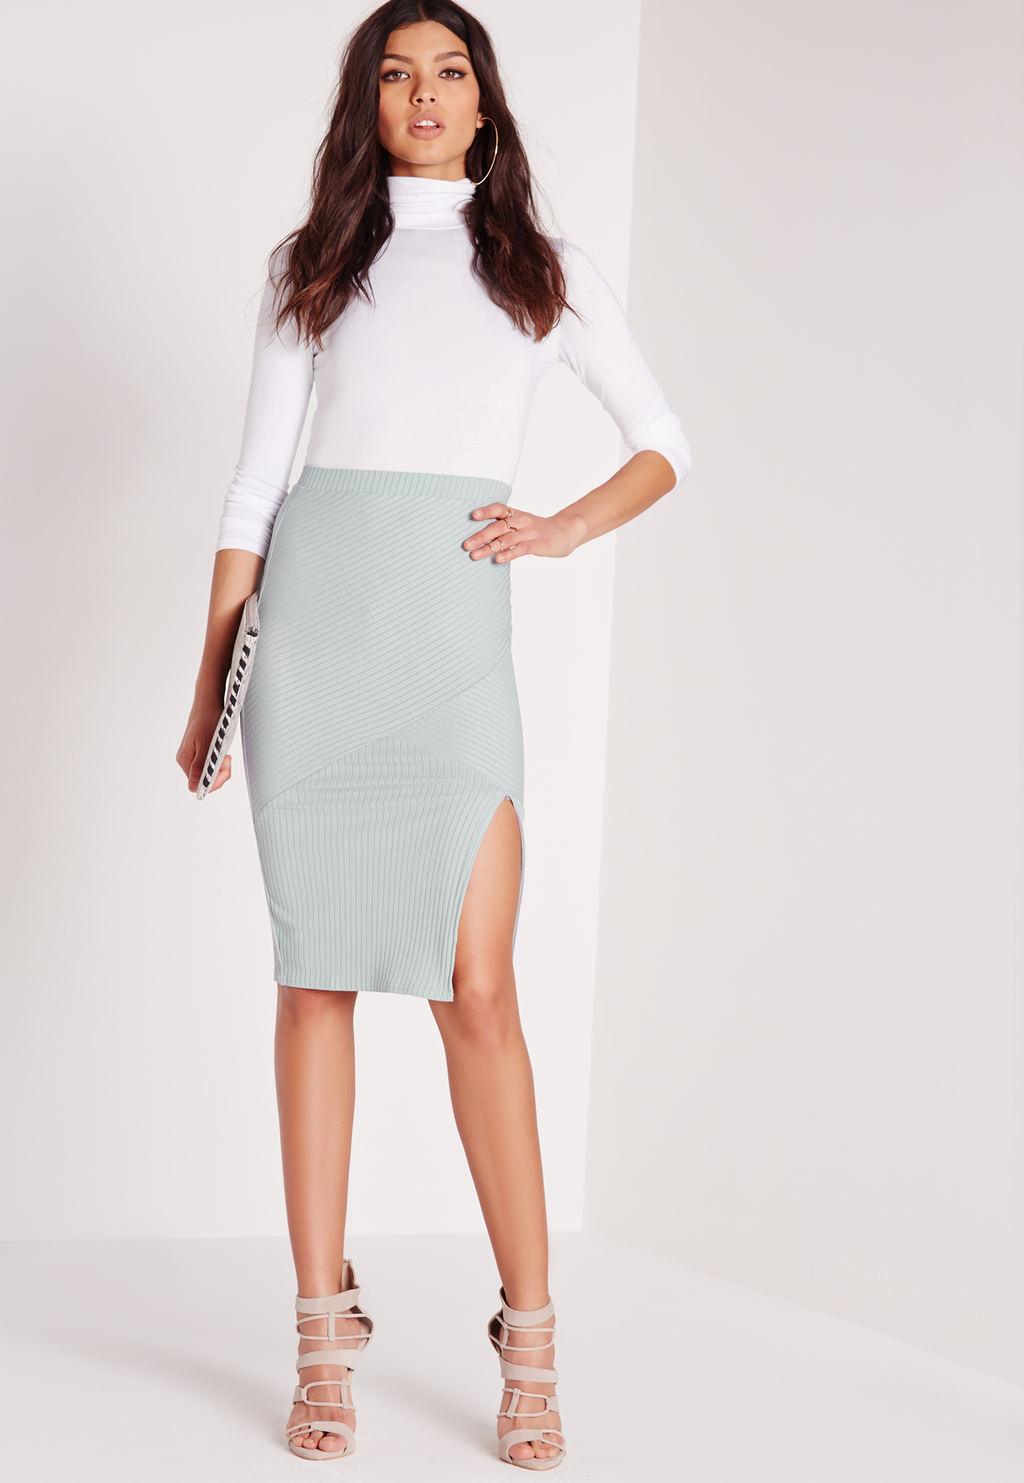 Ribbed Panel Longline Skirt Green, Green - pattern: plain; style: pencil; fit: tight; waist: mid/regular rise; predominant colour: pistachio; occasions: evening; length: on the knee; fibres: polyester/polyamide - stretch; hip detail: slits at hip; texture group: jersey - clingy; pattern type: fabric; season: s/s 2016; wardrobe: event